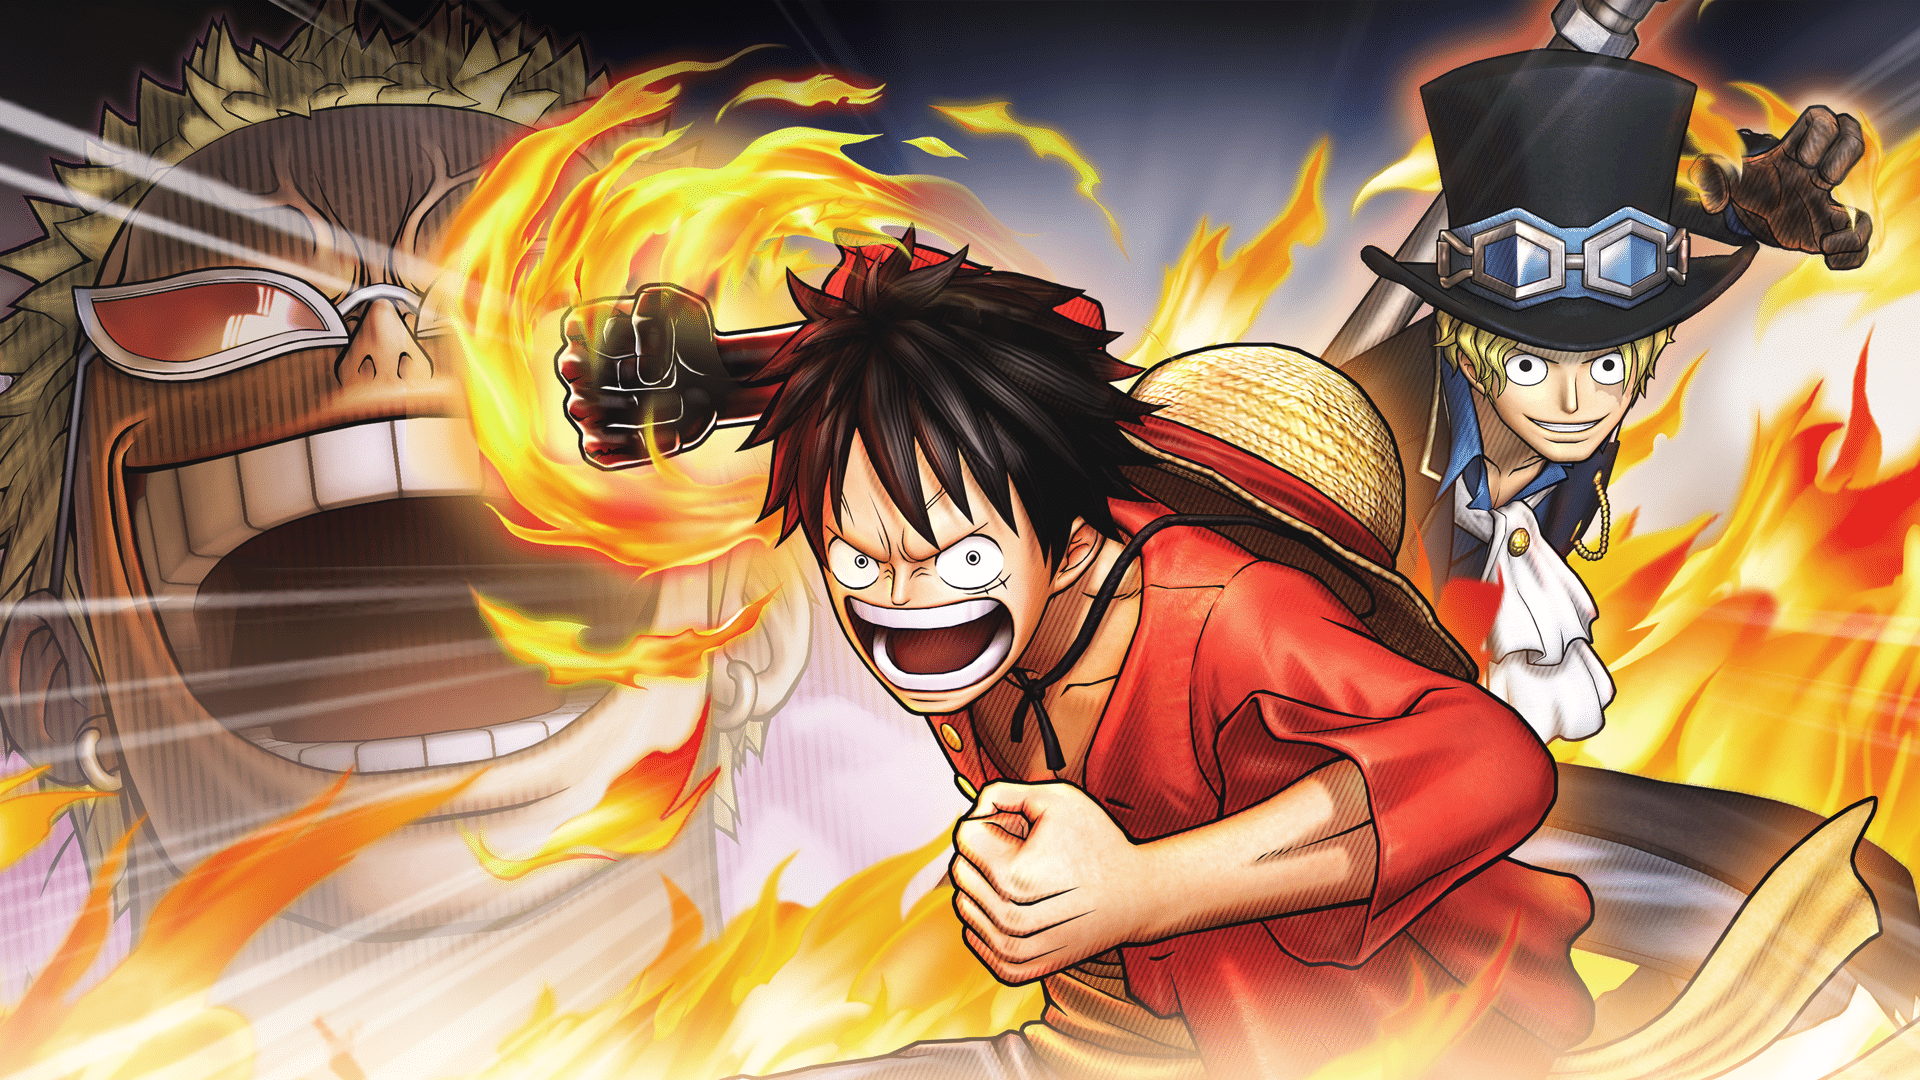 One Piece Pirate Warriors 4 - Basil Hawkins Trailer - Nintendo ... jugar one piece: pirate warriors